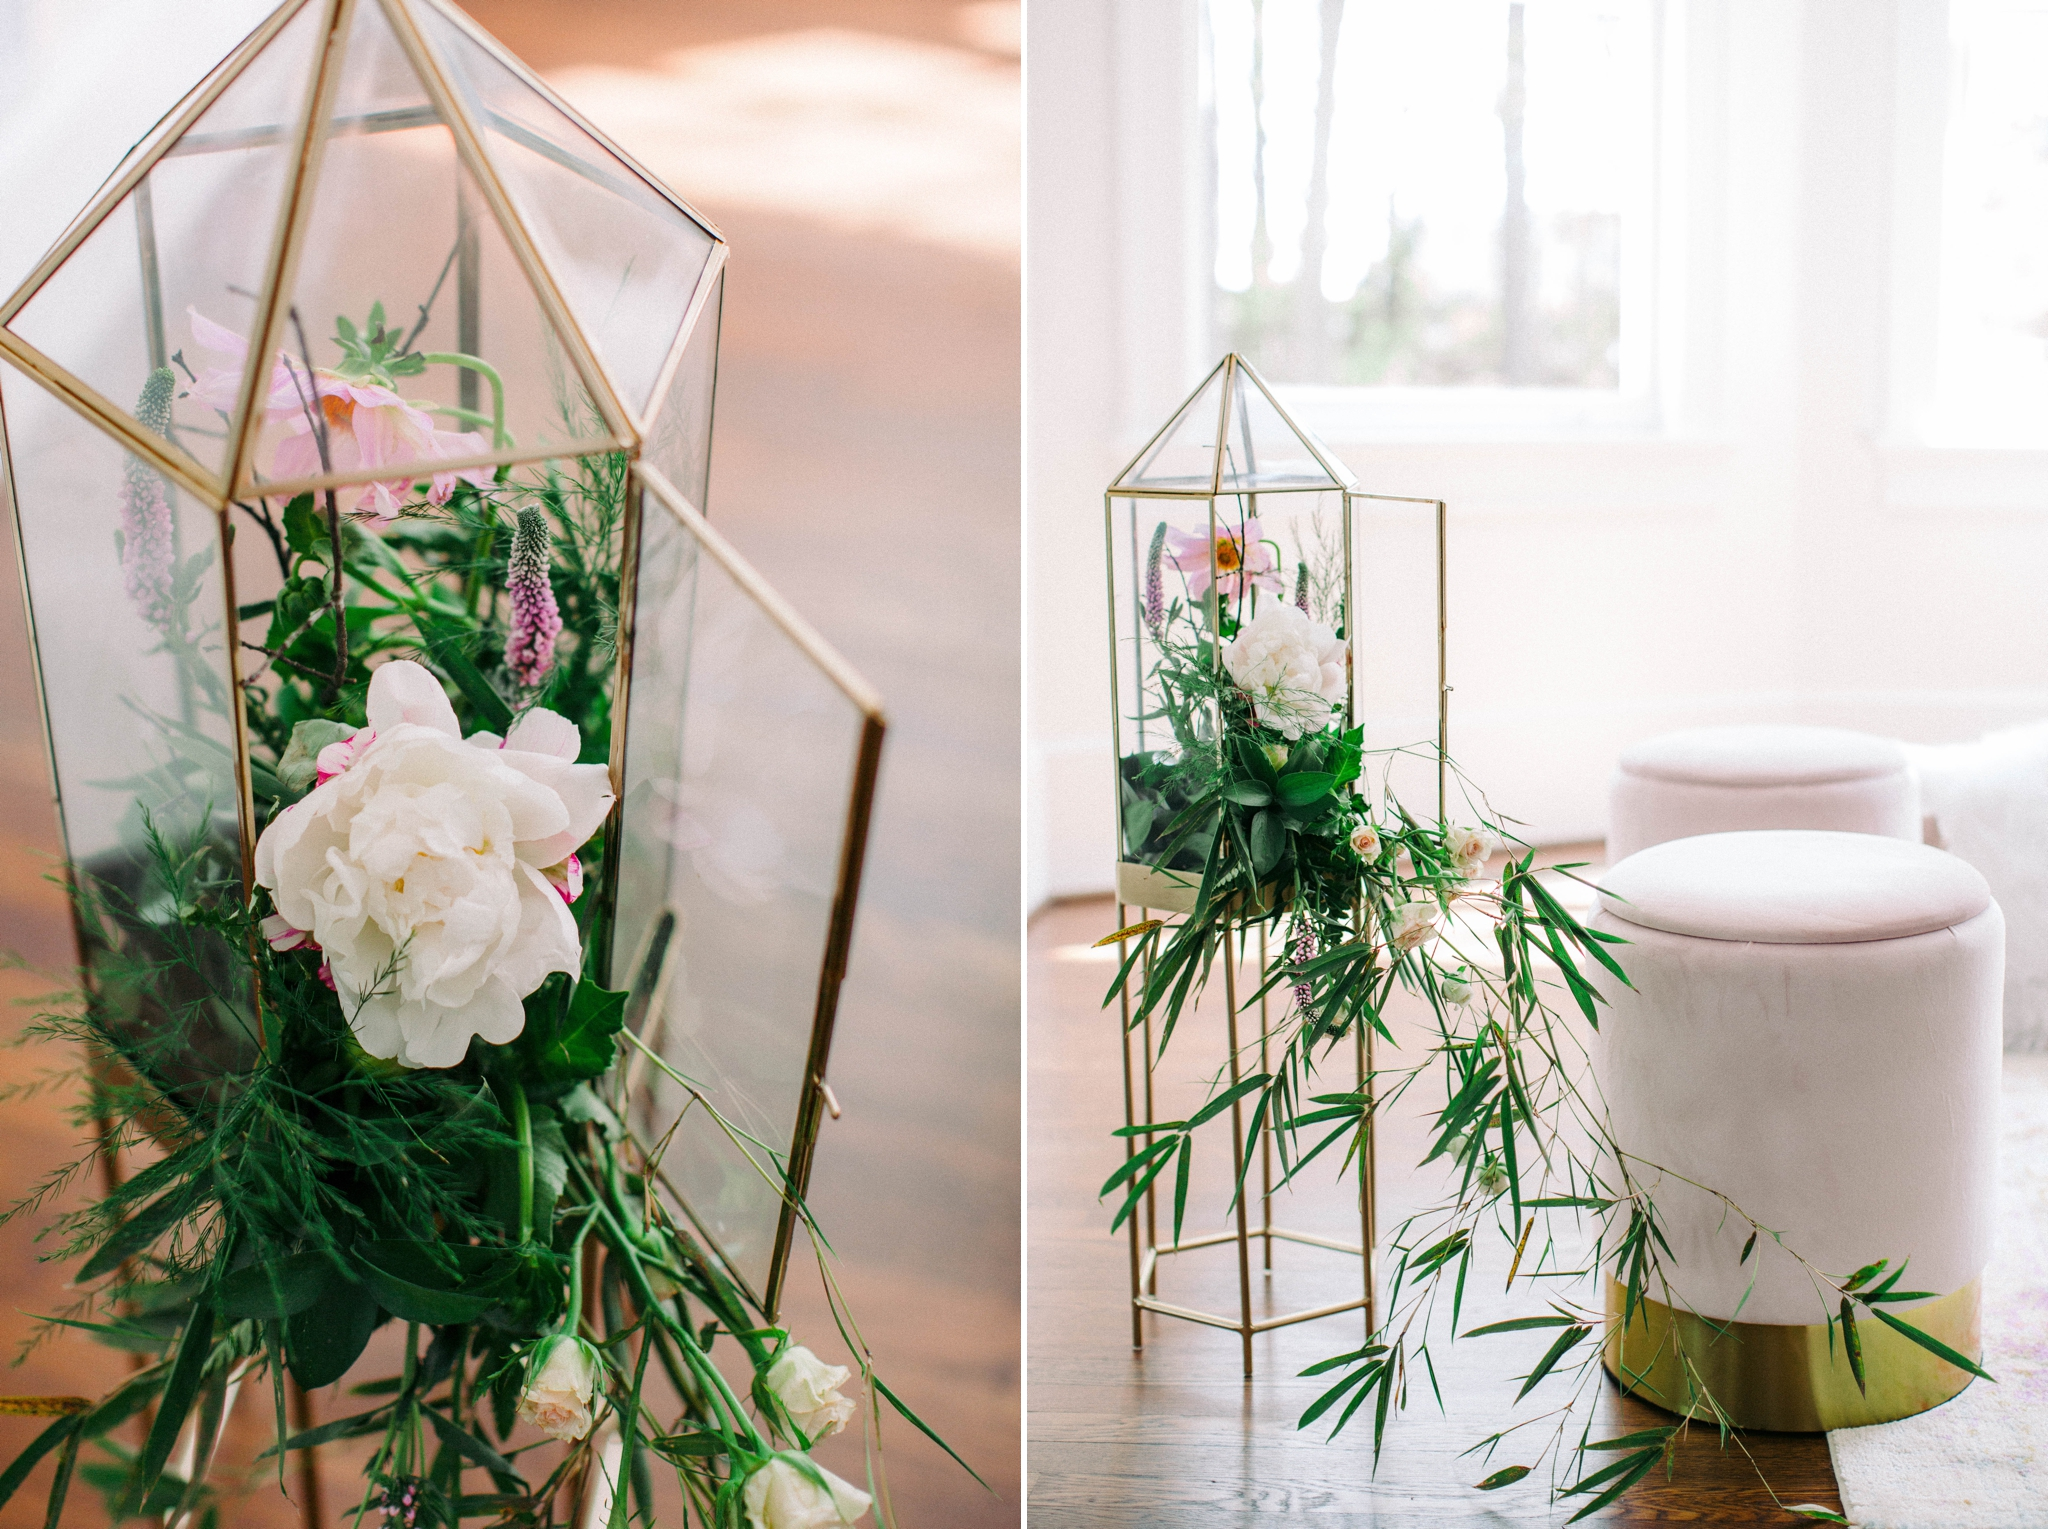 Gold terrarium with green plants and white flowers as wedding decorations - honolulu oahu hawaii wedding photographer